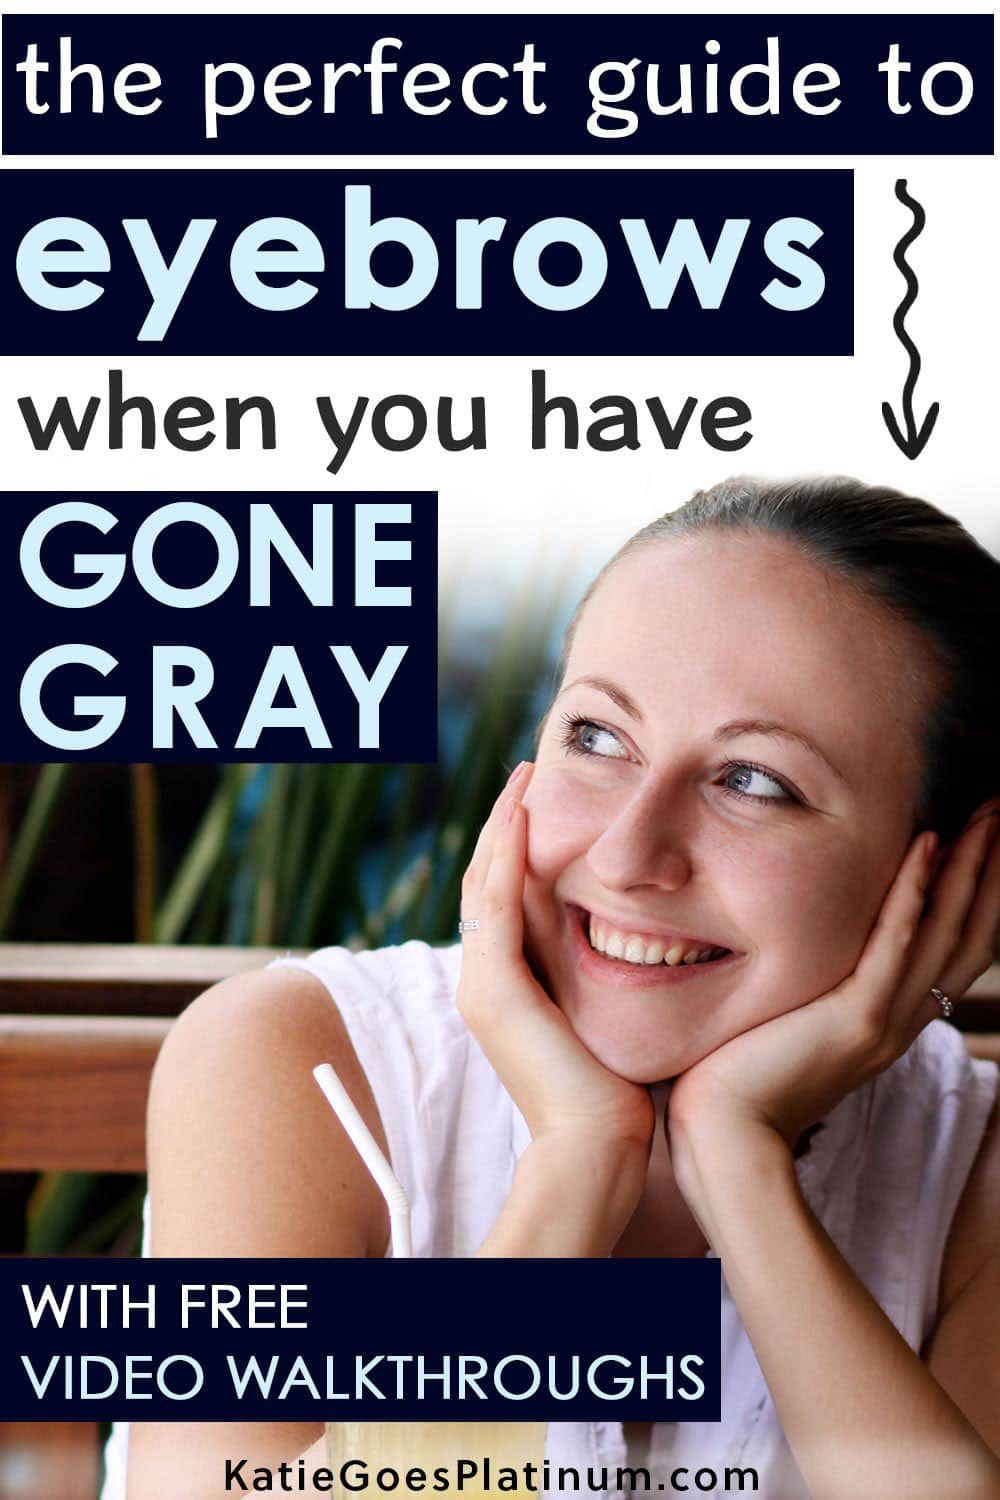 Got Gray Hair? Here's How to Make Your Eyebrows Look Their ...